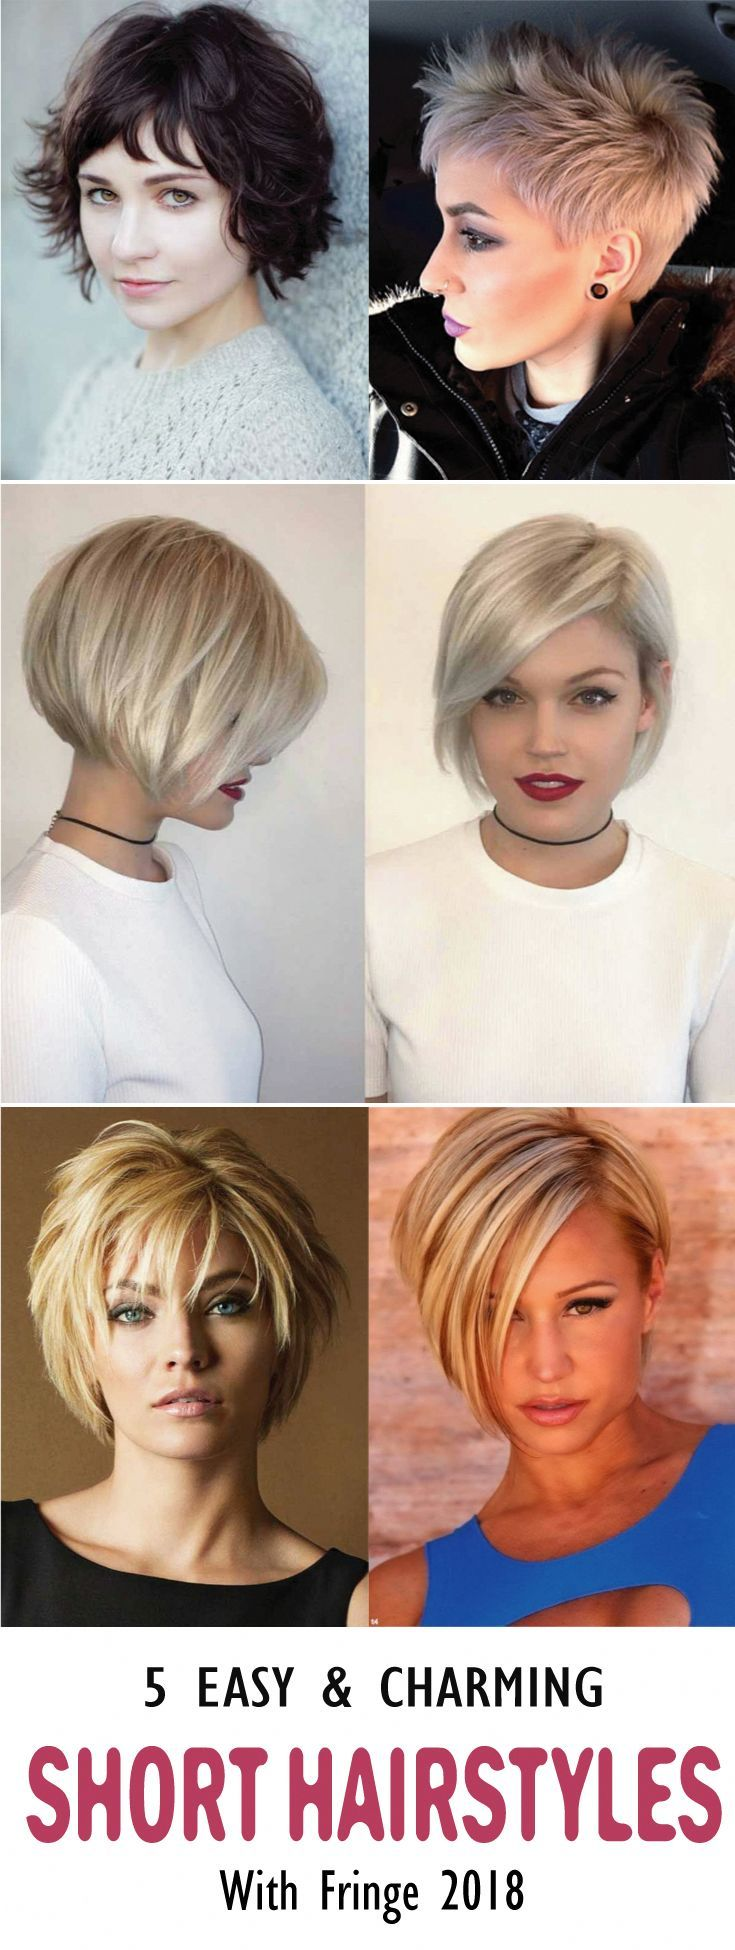 this natural braids hairstyle with the bangs can work in protective hairdos as long as you don't use curling and flat irons. You can use flexi rods